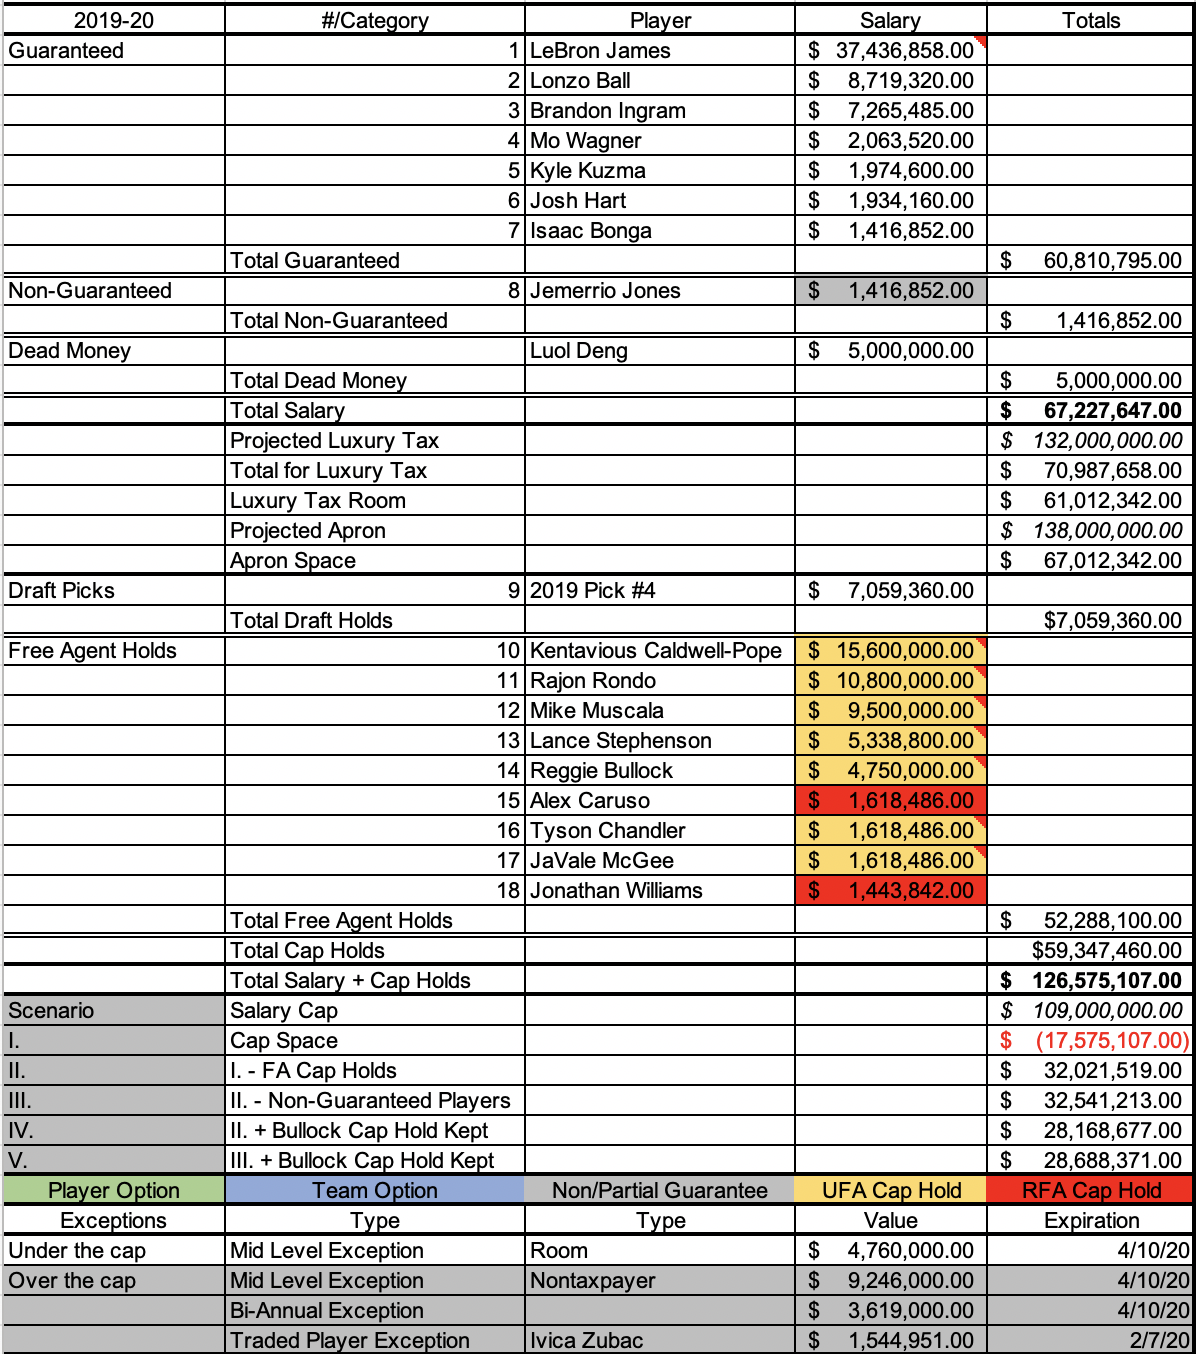 Lakers current 2019-20 payroll and cap space projection